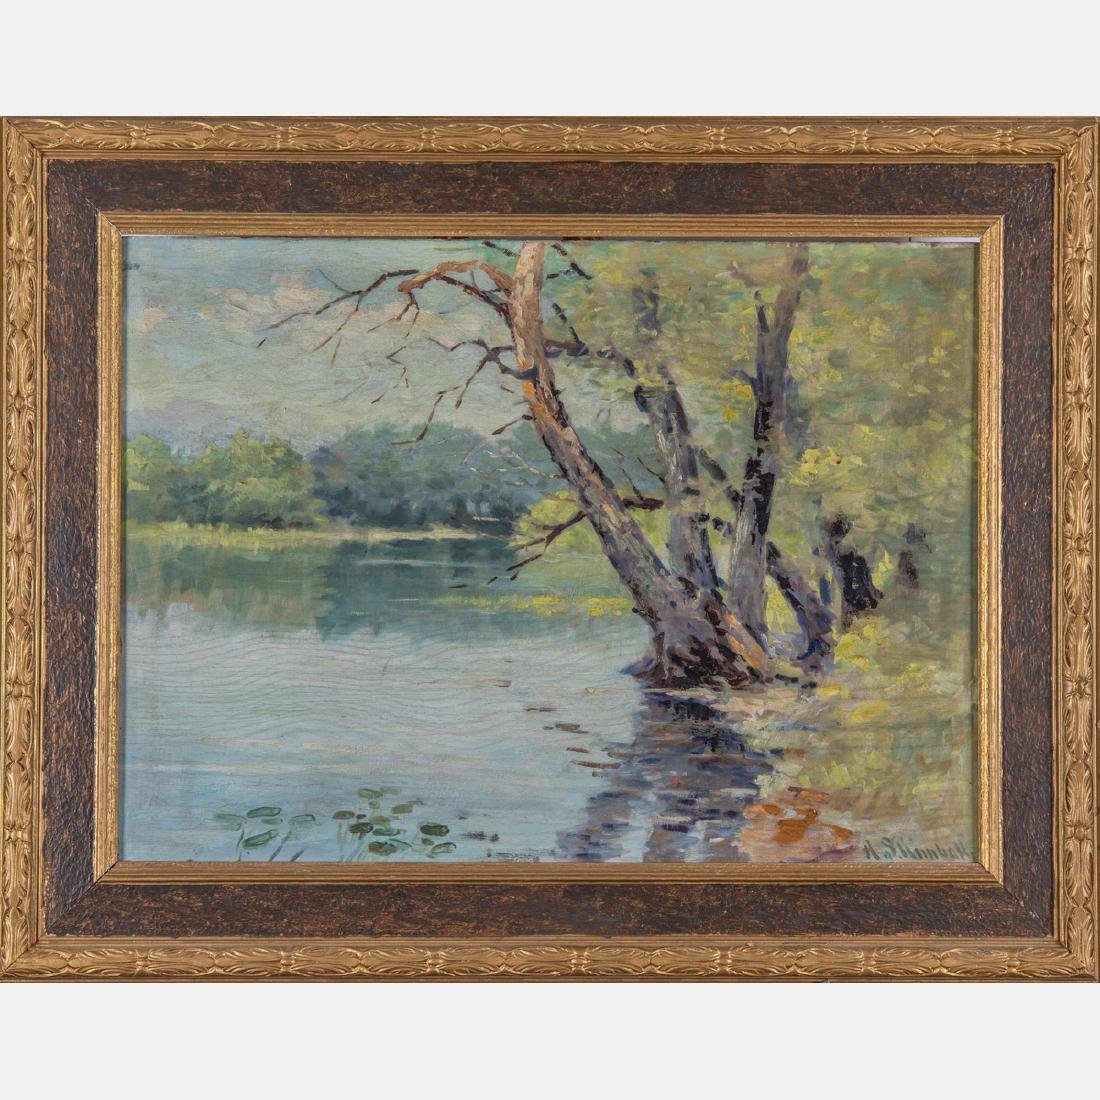 A. Shimball (20th Century) Forest River Scene, Oil on